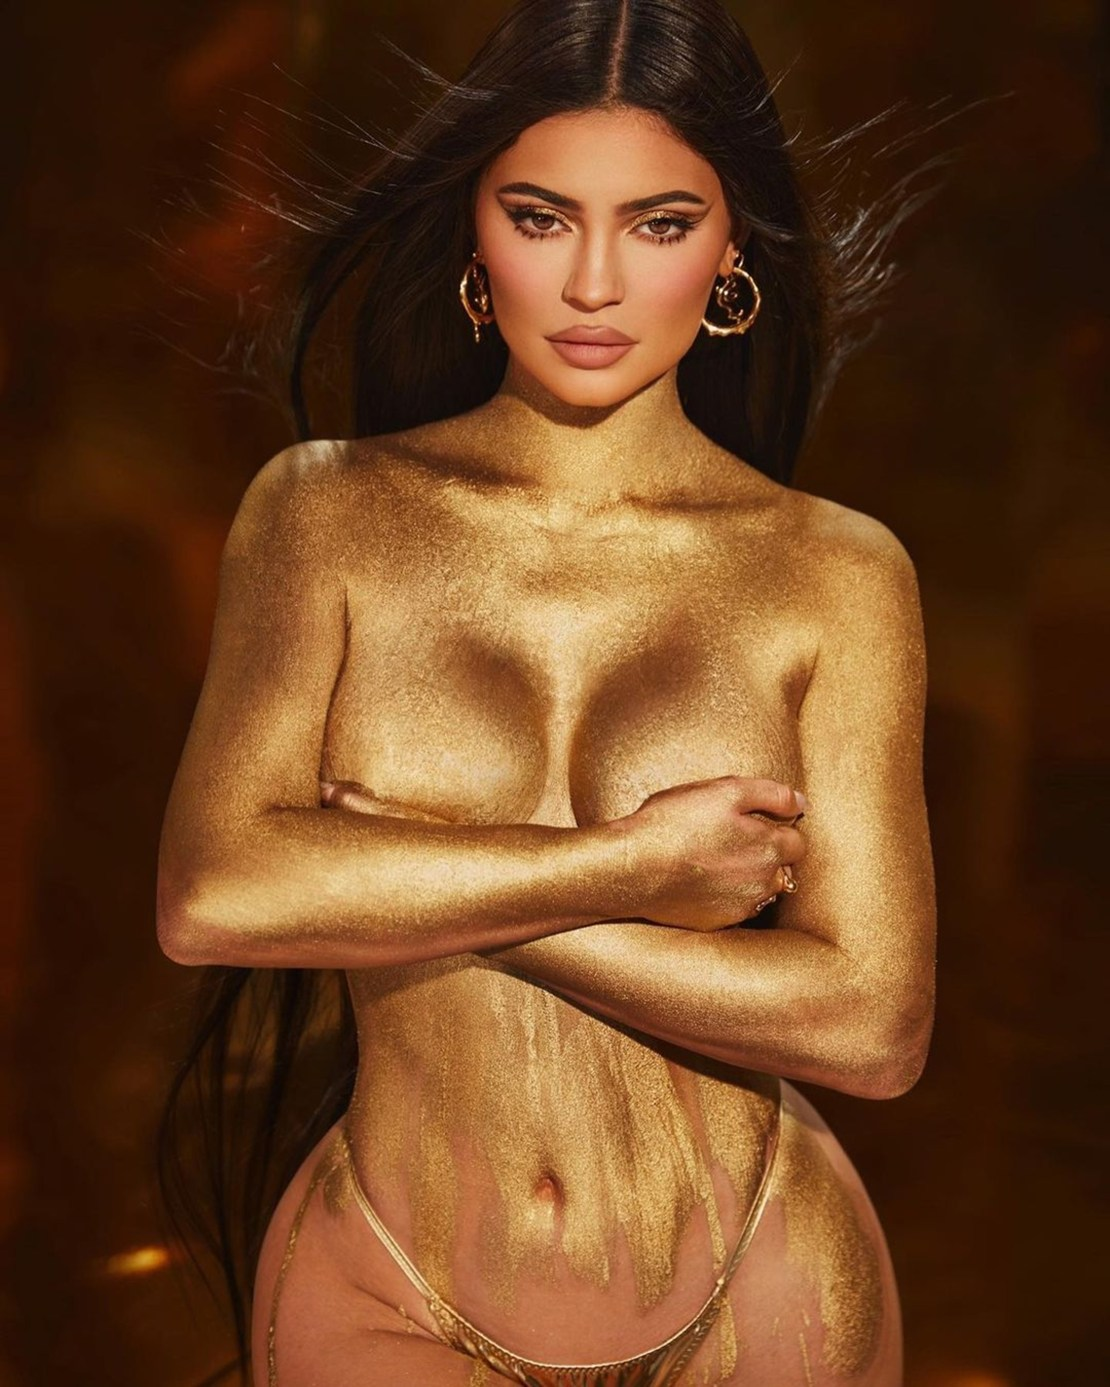 Kylie Jenner leaves little to the imagination as she poses nude in gold paint